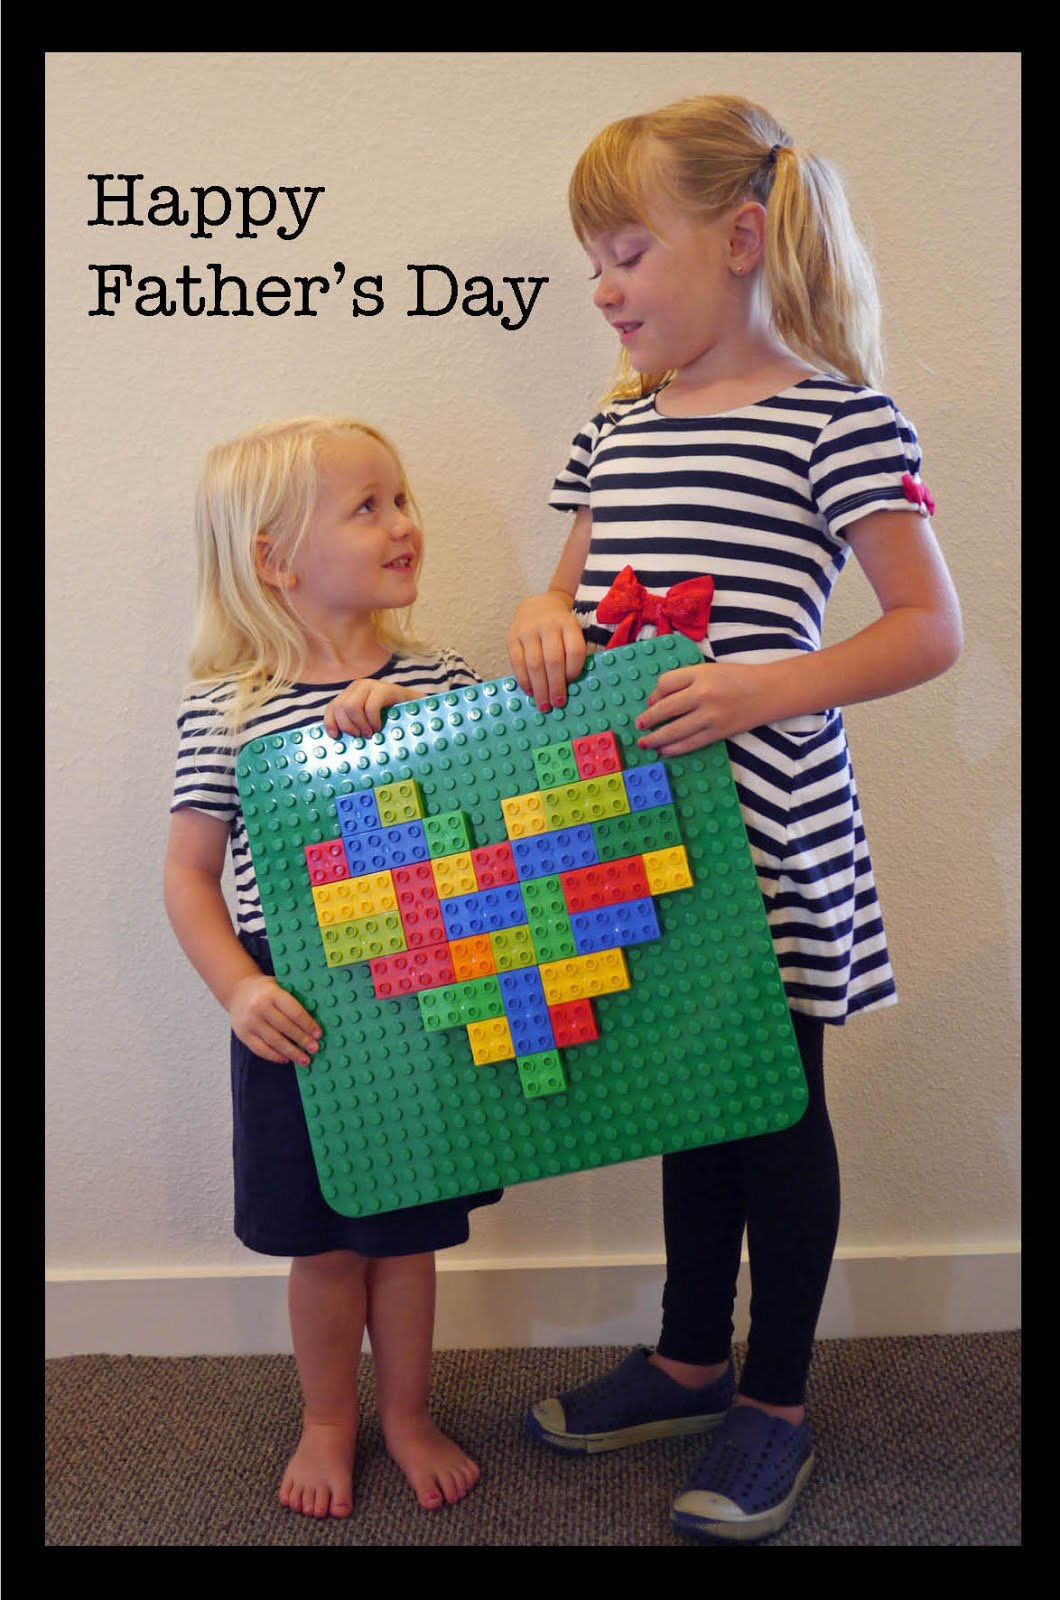 Father's Day: Don't Lego My Heart